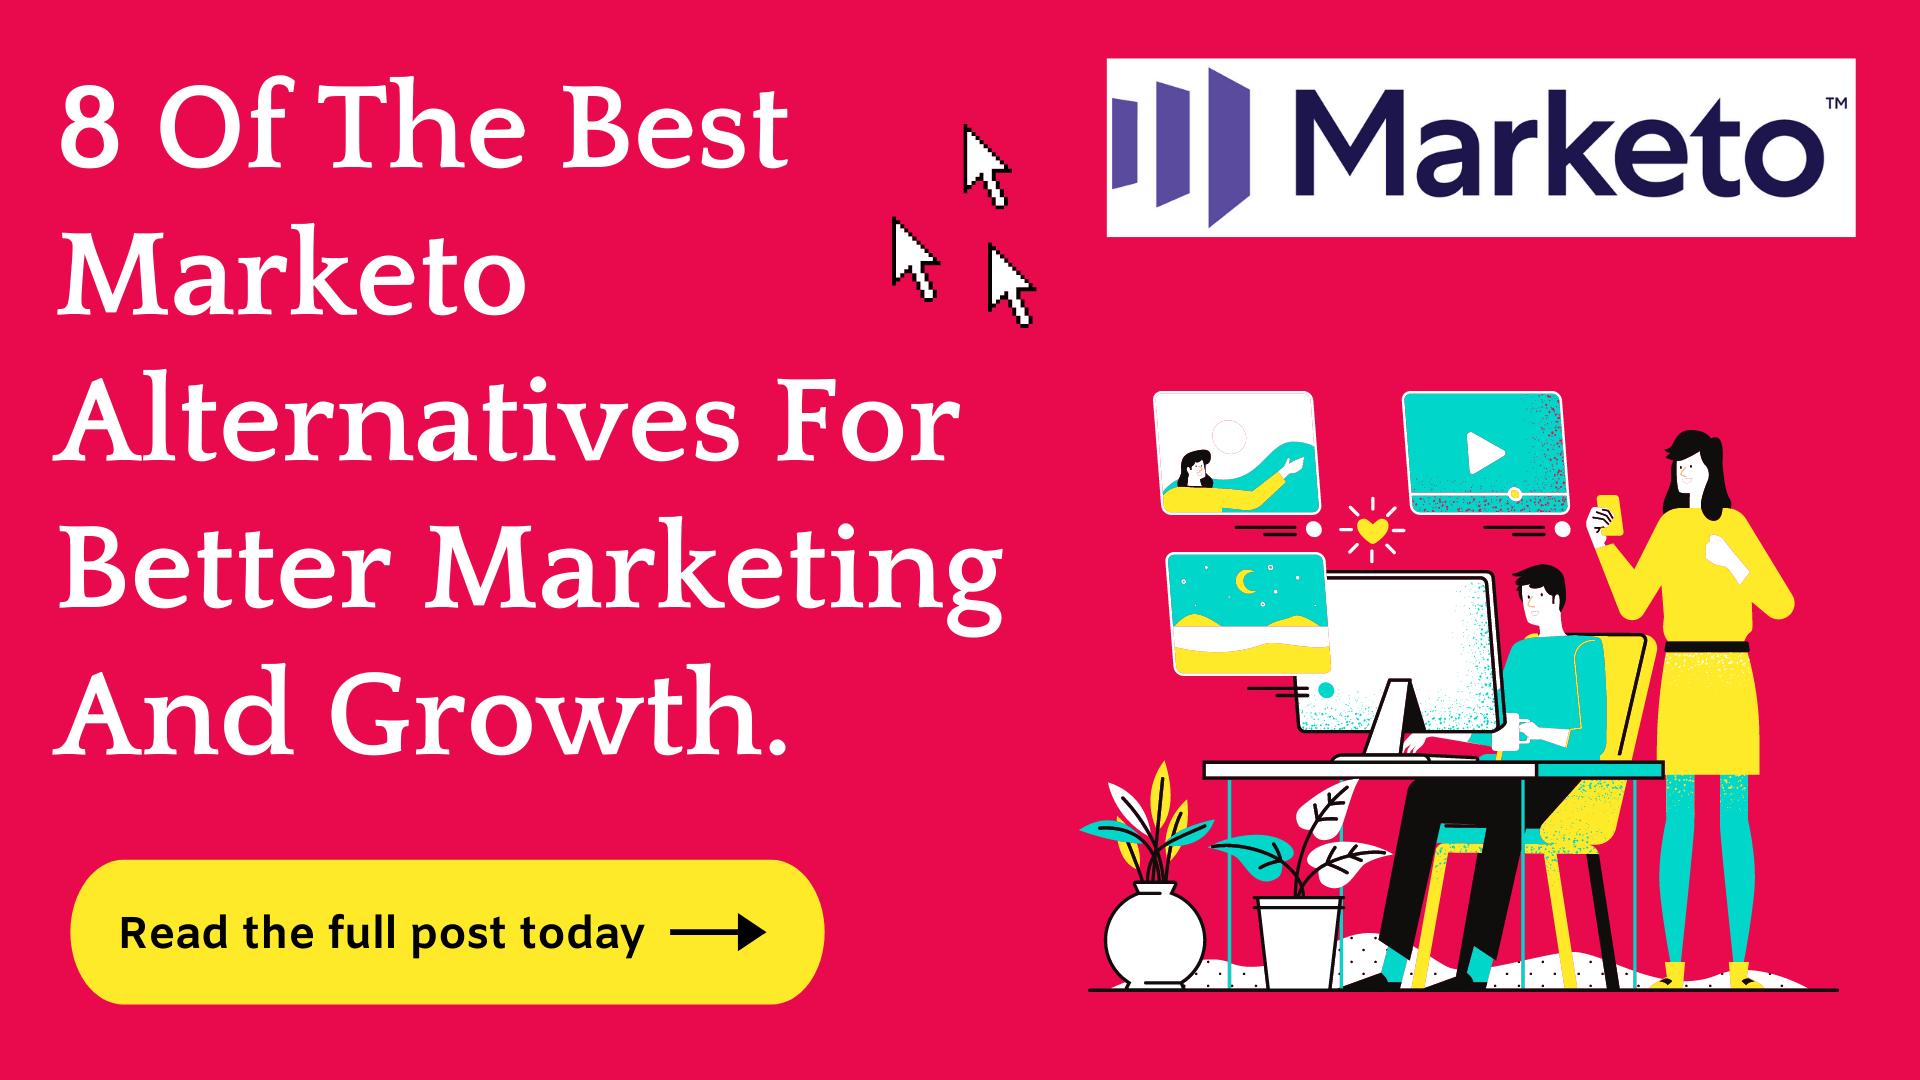 8 Marketo Alternatives They Don't Want You To Know (2021)